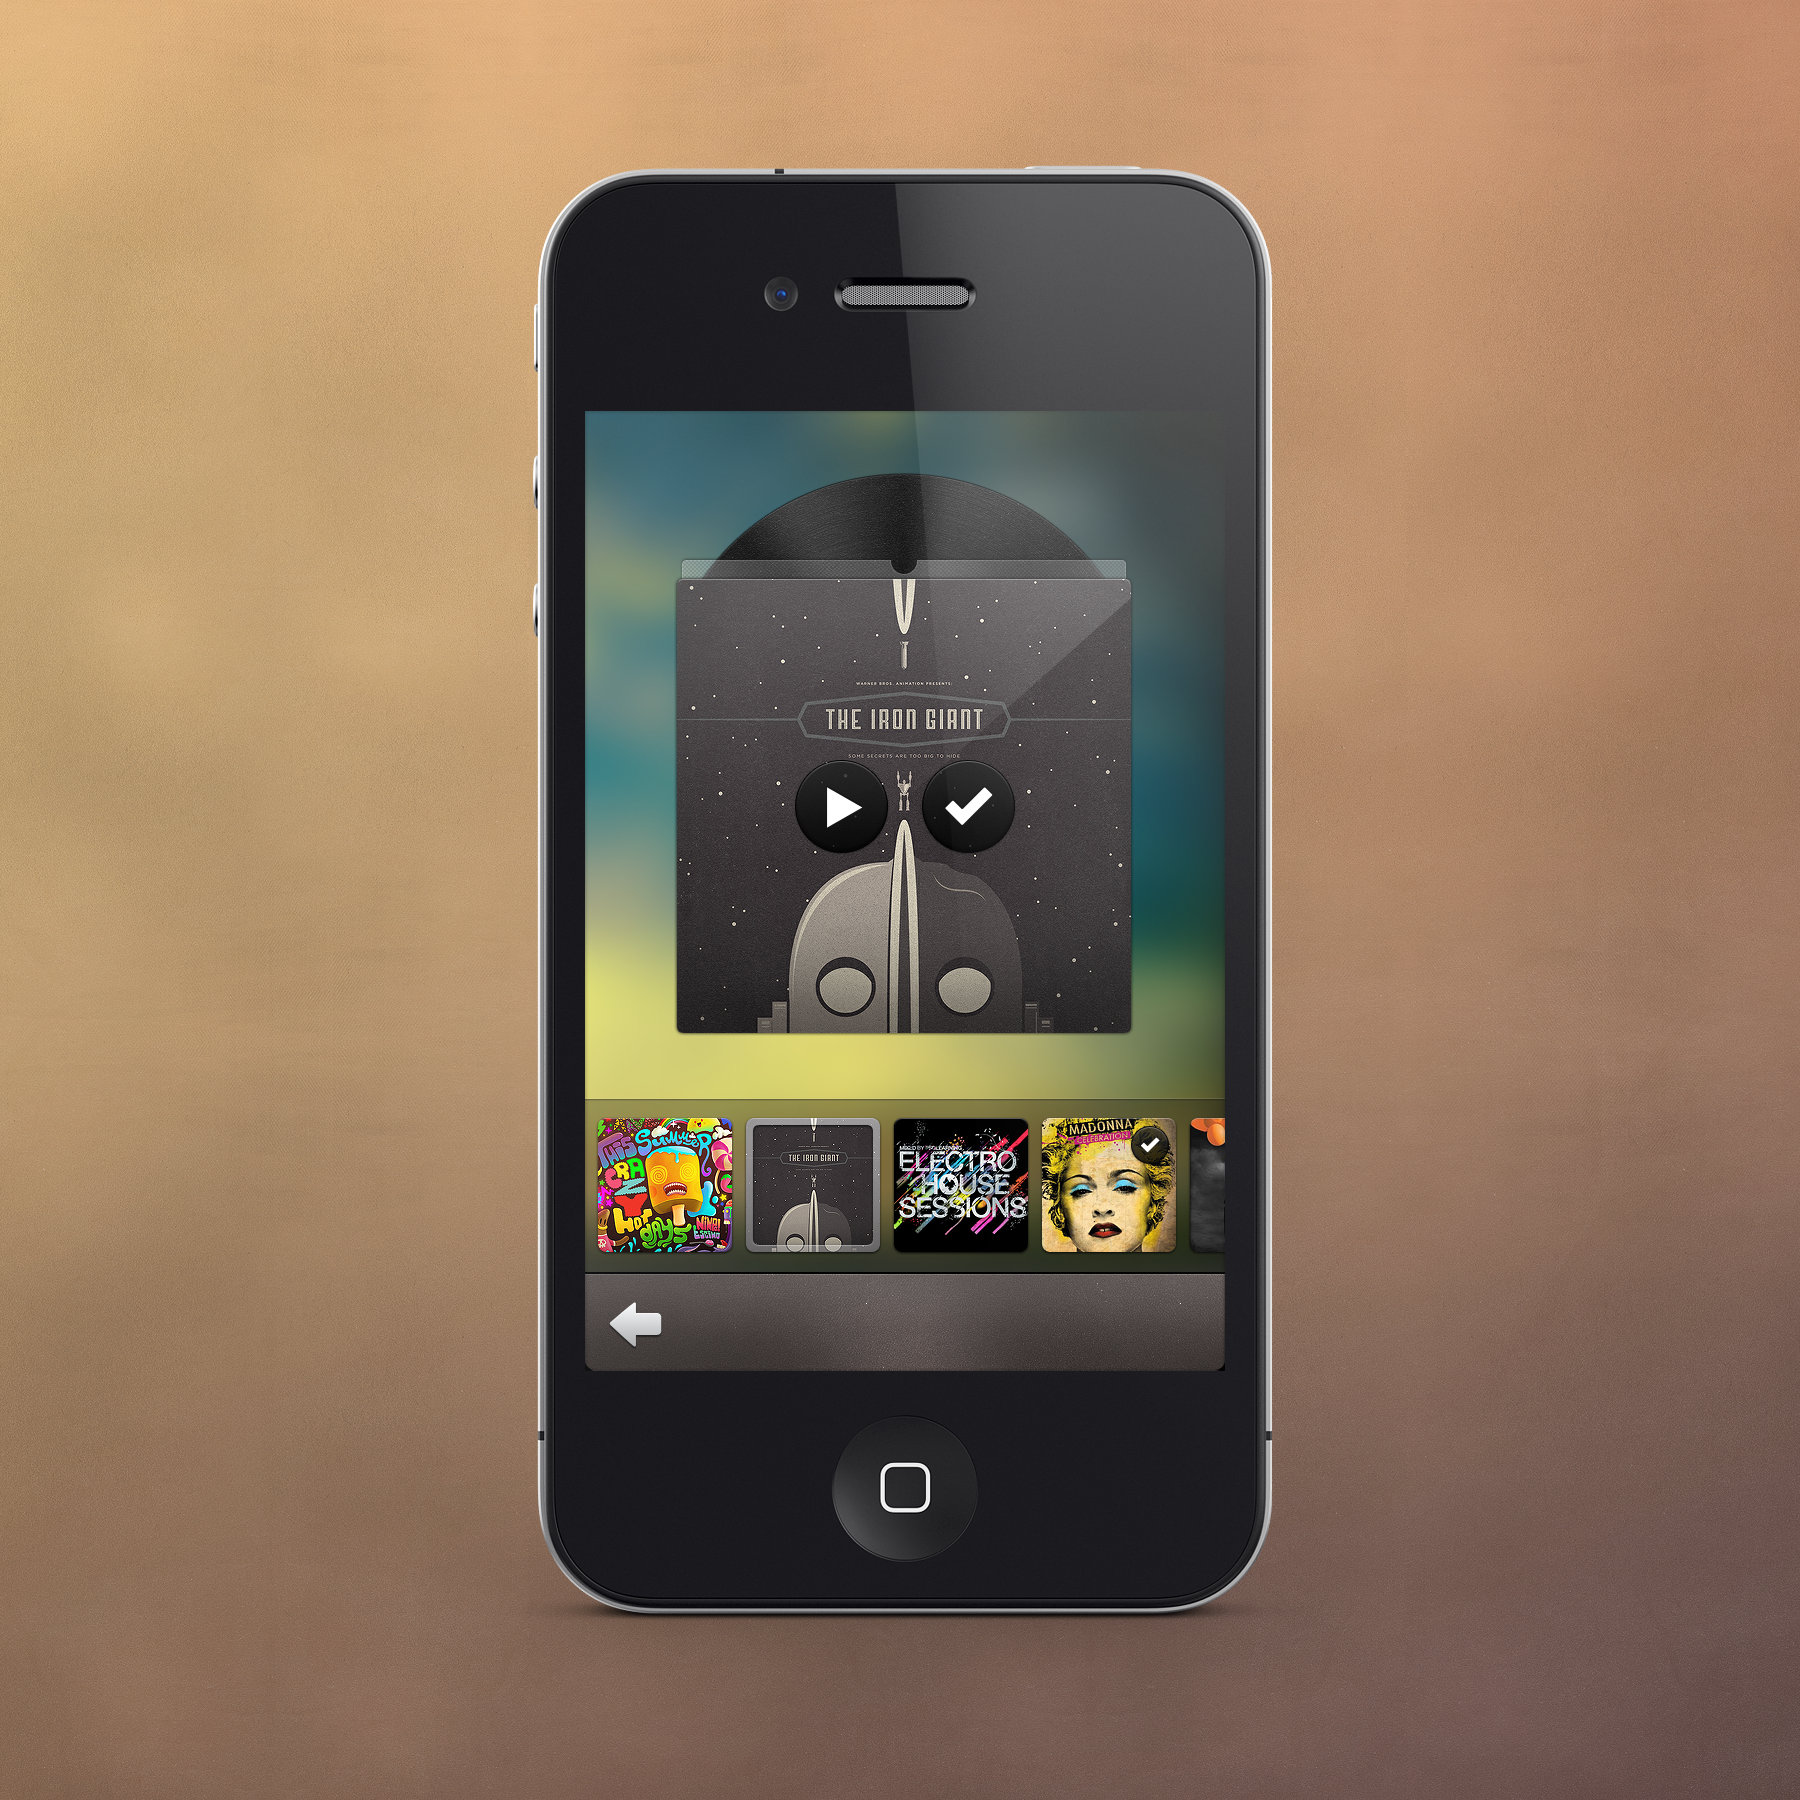 pretty pixels1 40 Quality Examples of iOS User Interface Designs